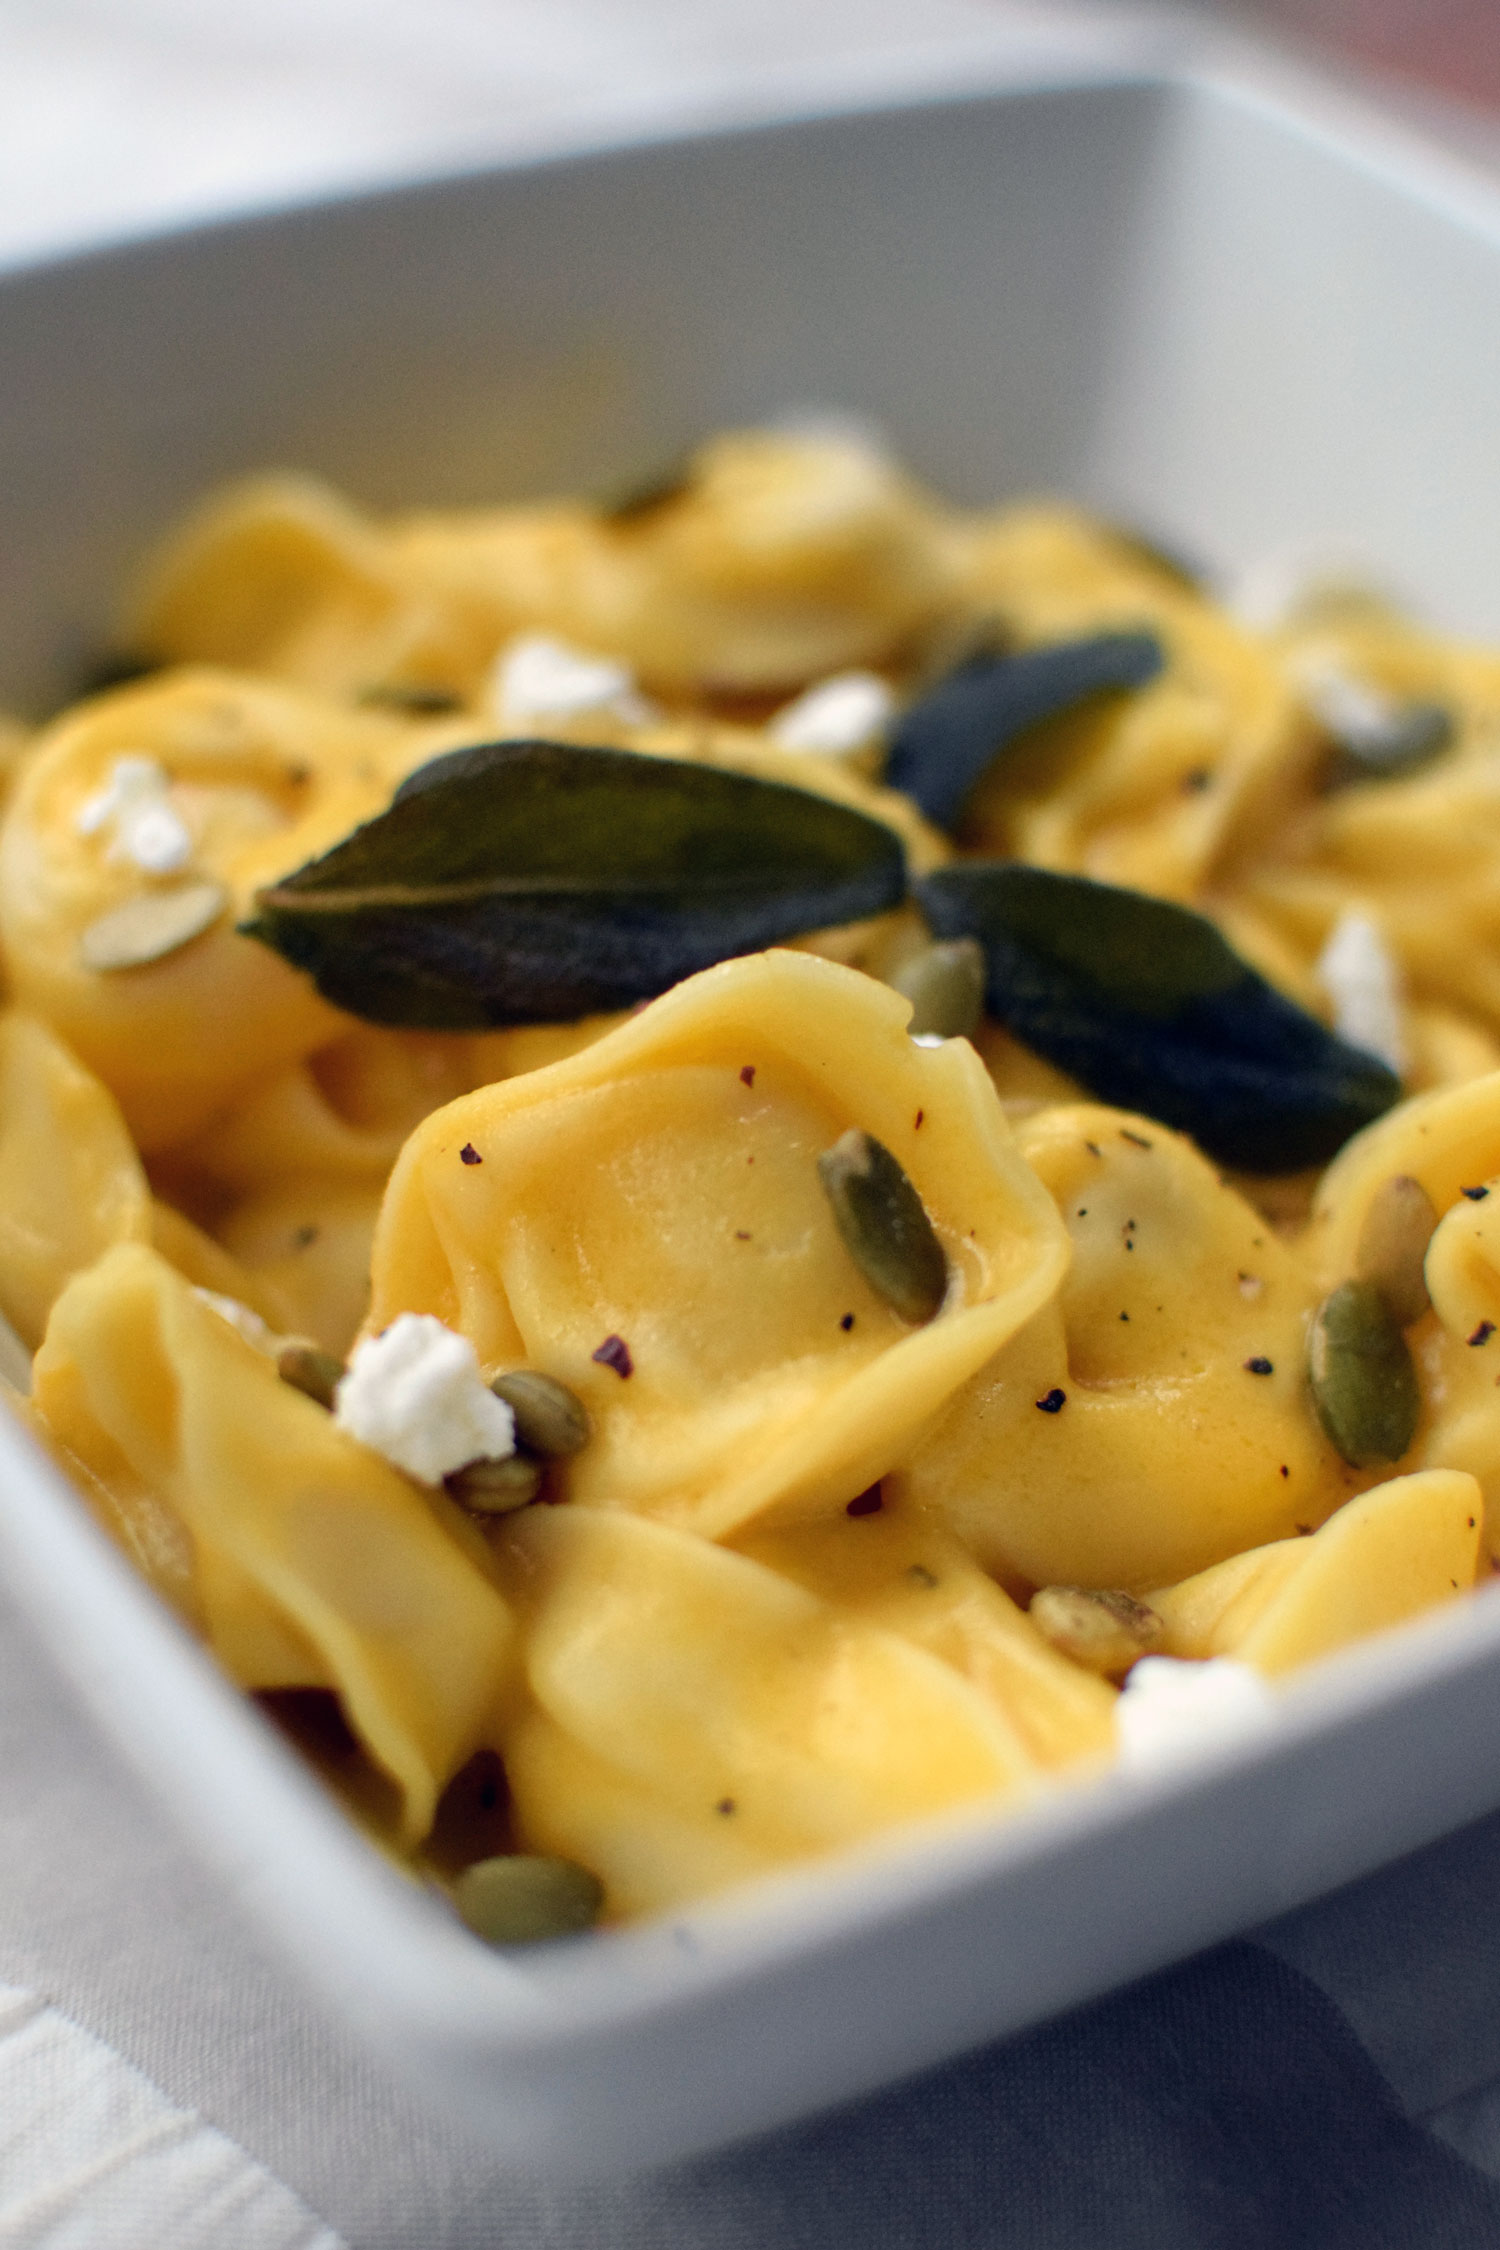 Are you drooling over this butternut squash and sage tortellini yet? Try this easy meal for fall! | themillennialmenu.com